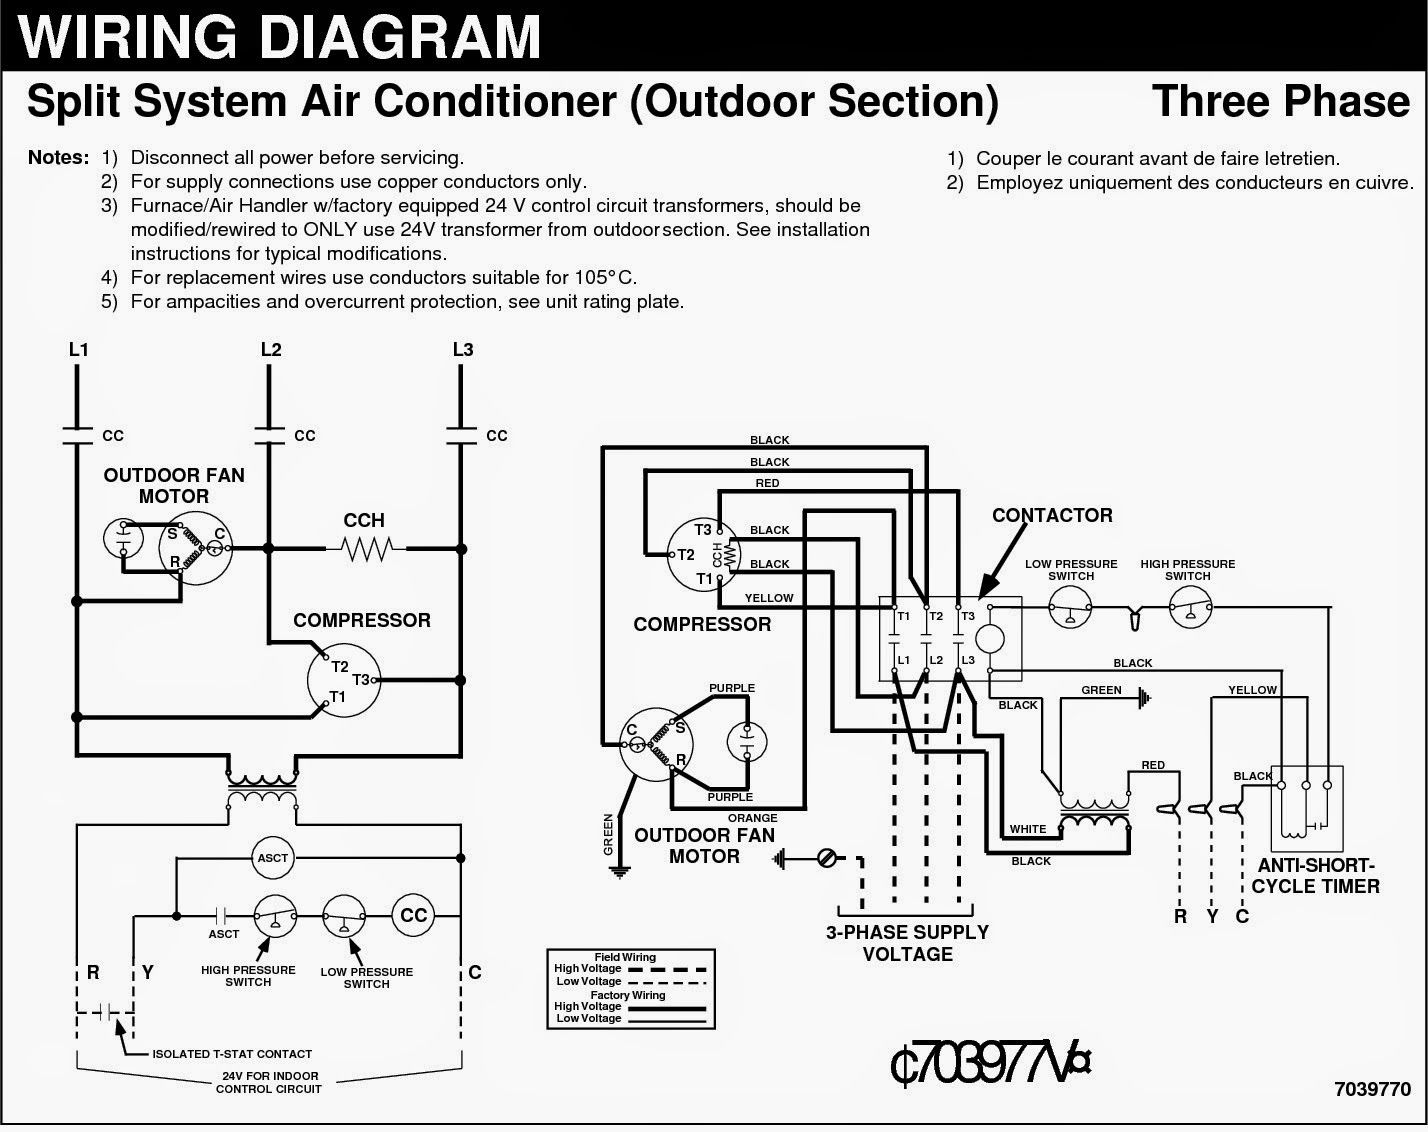 Electrical Wiring Diagrams for Air Conditioning Systems – Part Two ~  Electrical Knowhow | Electrical diagram, Air conditioning system, Basic electrical  wiringPinterest